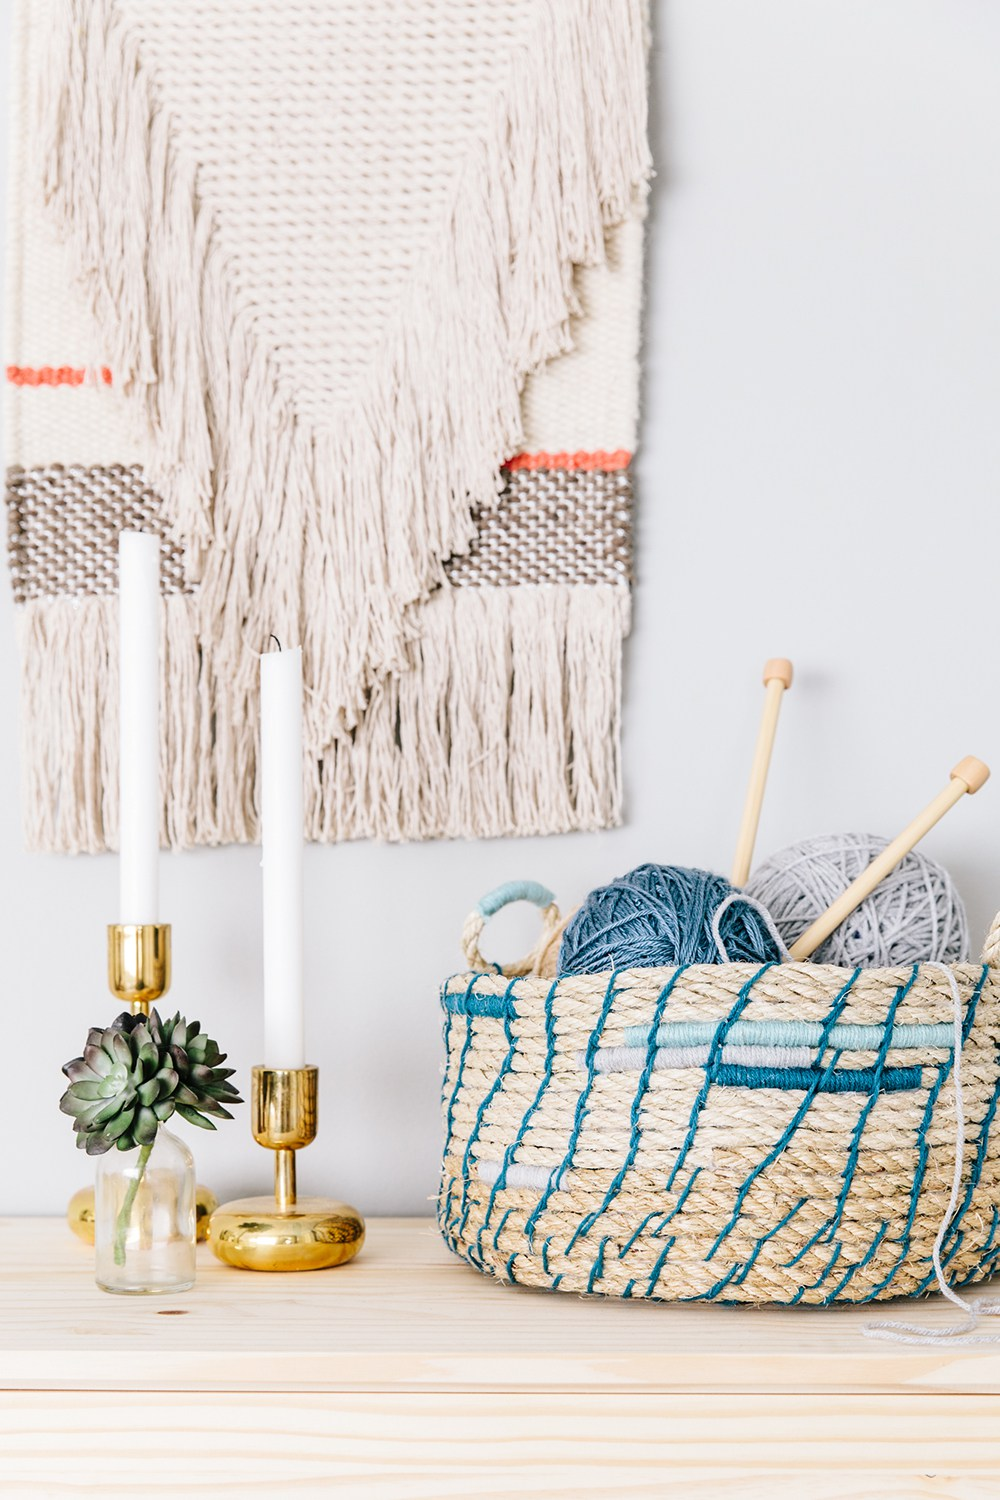 20 DIY Projects Featuring Rope Crafts